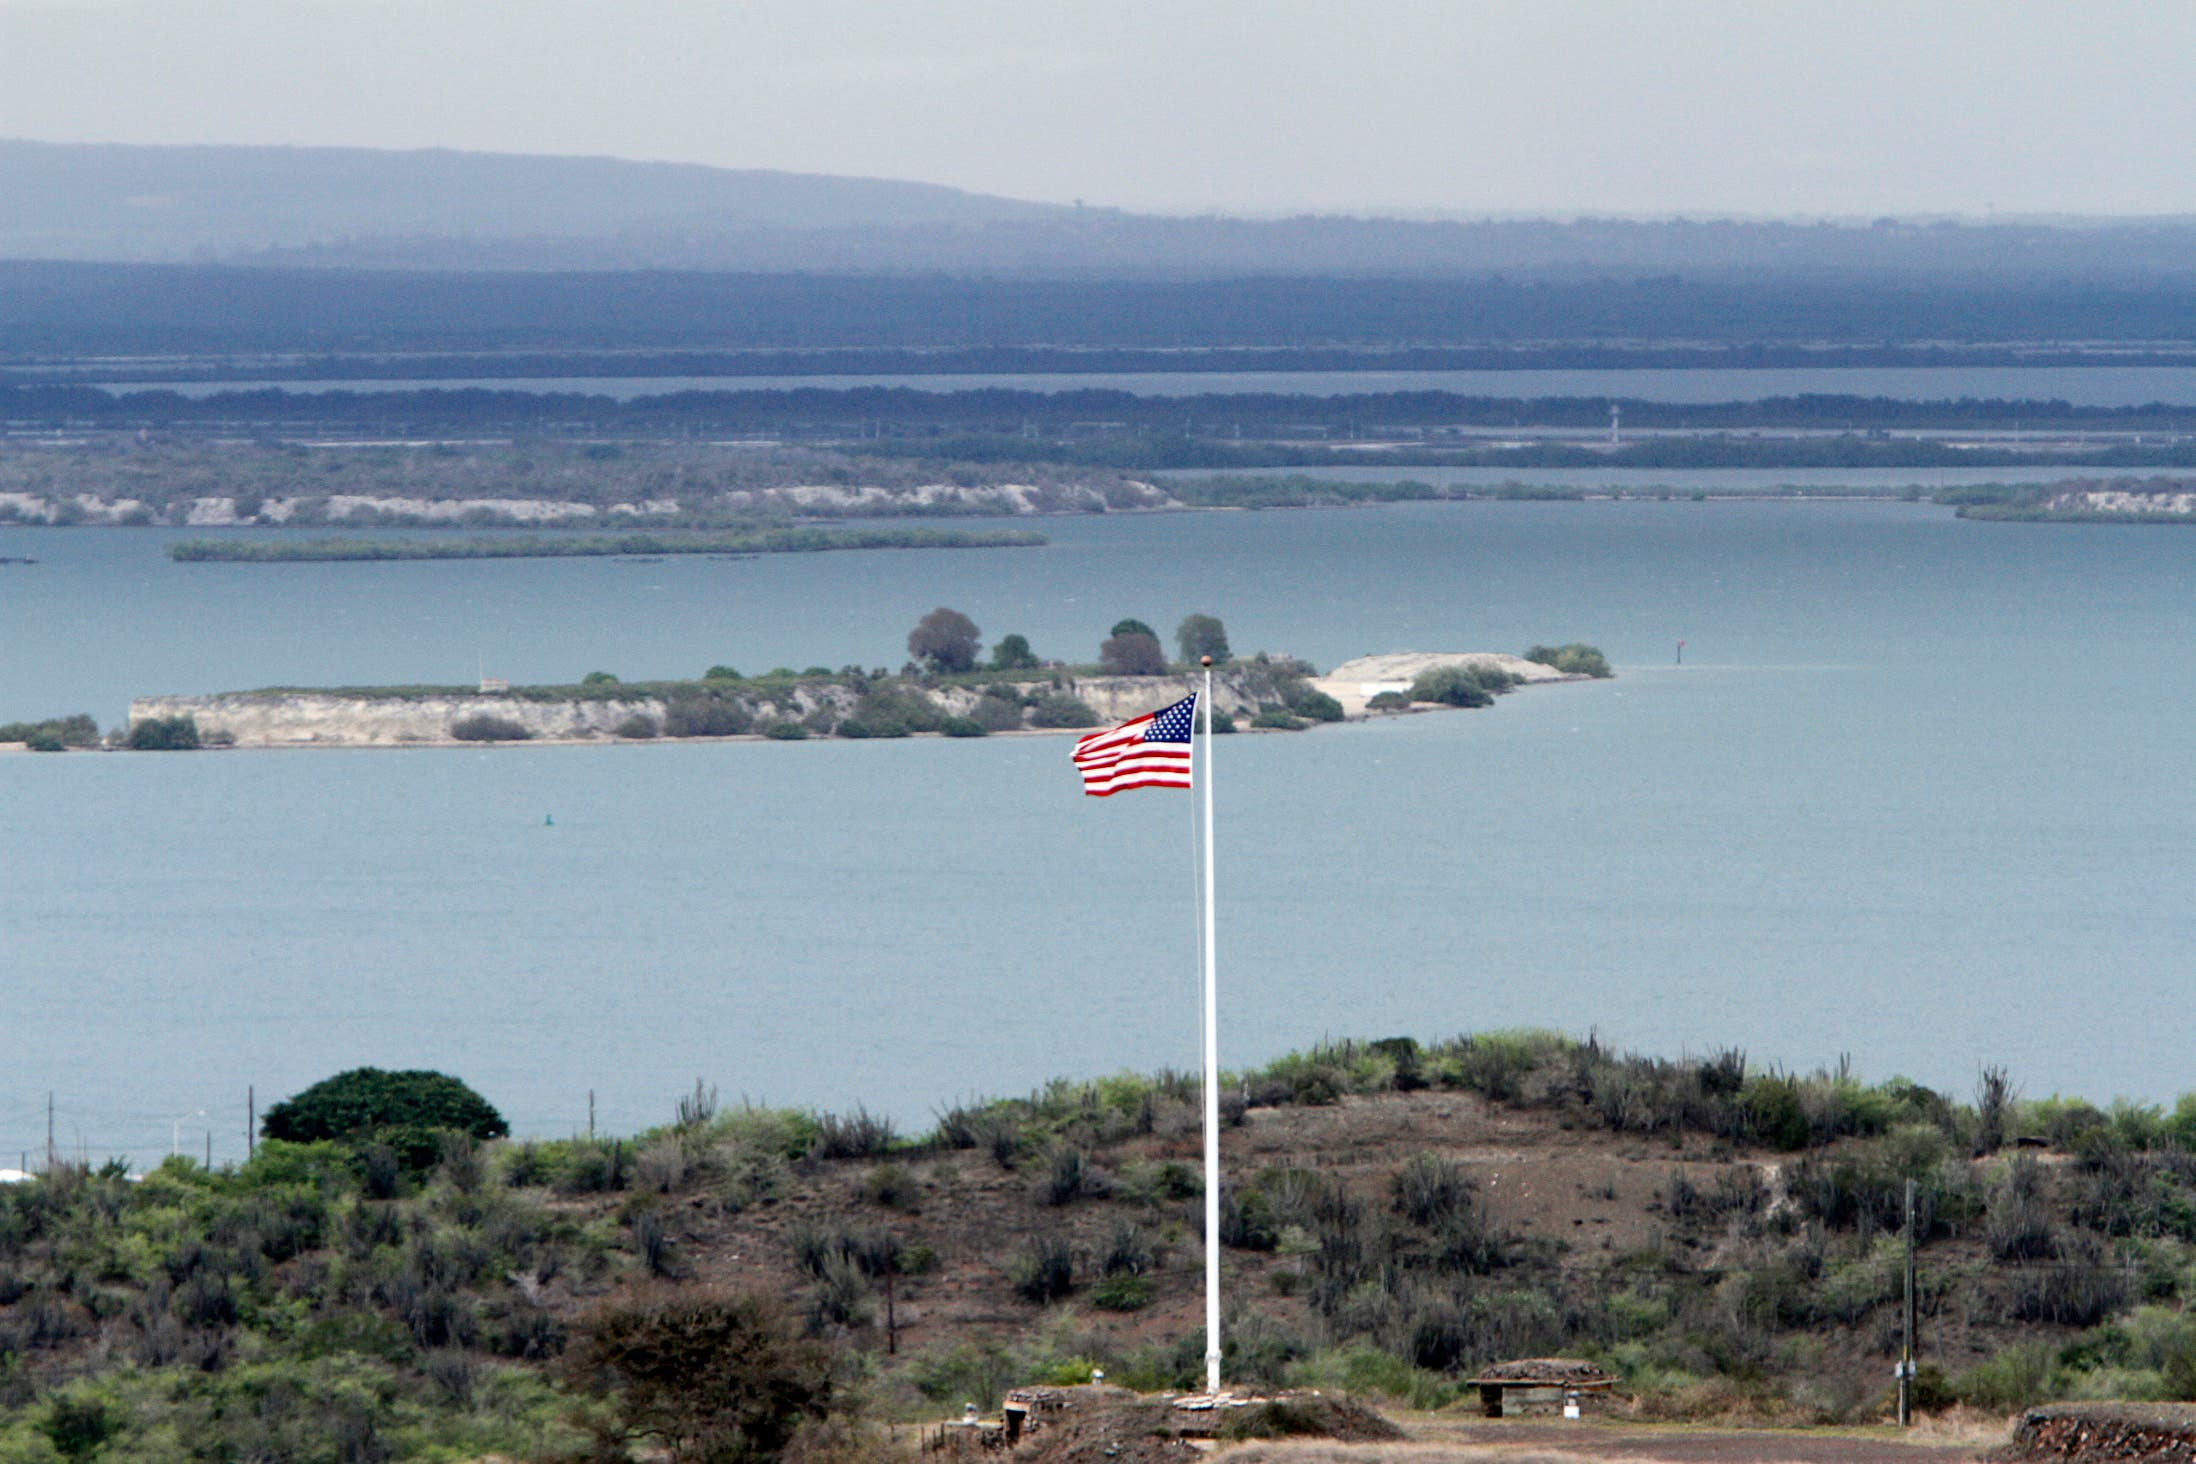 A view of Hospital Cay, Guantanamo Bay, Cuba during the arraignment of Khalid Sheikh Mohammed, and four co-defendants on May 5, 2012. (AP)